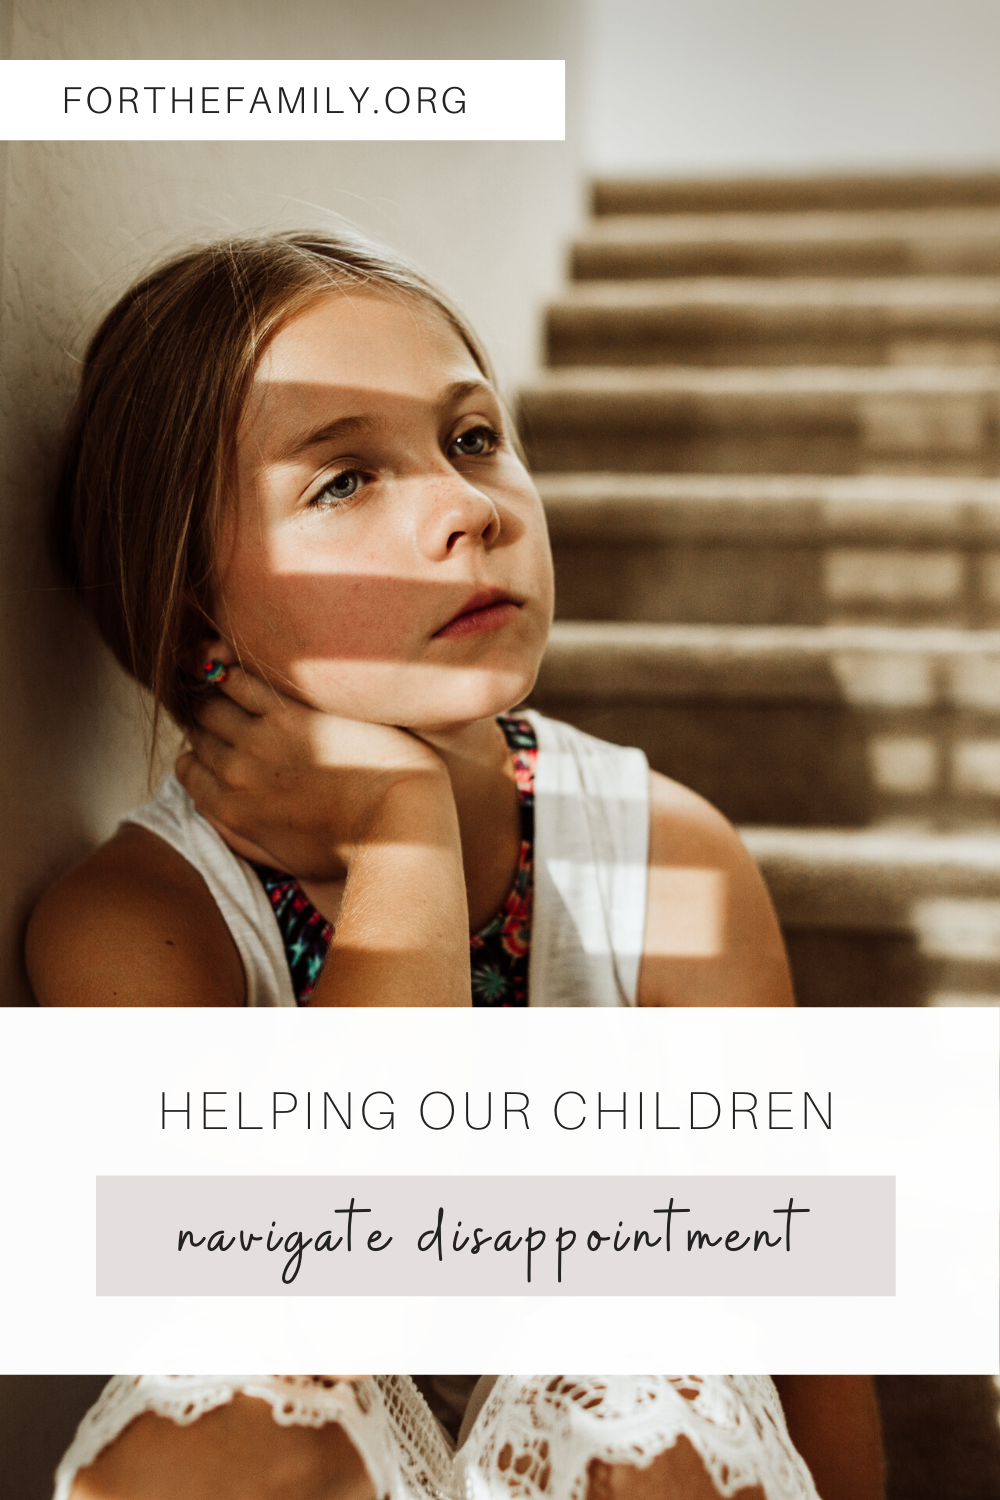 As adults, disappointment is hard to process, but it's even harder for our children. Us parents have an opportunity to help our children navigate through this season of disappointment in a healthy and Godly way!